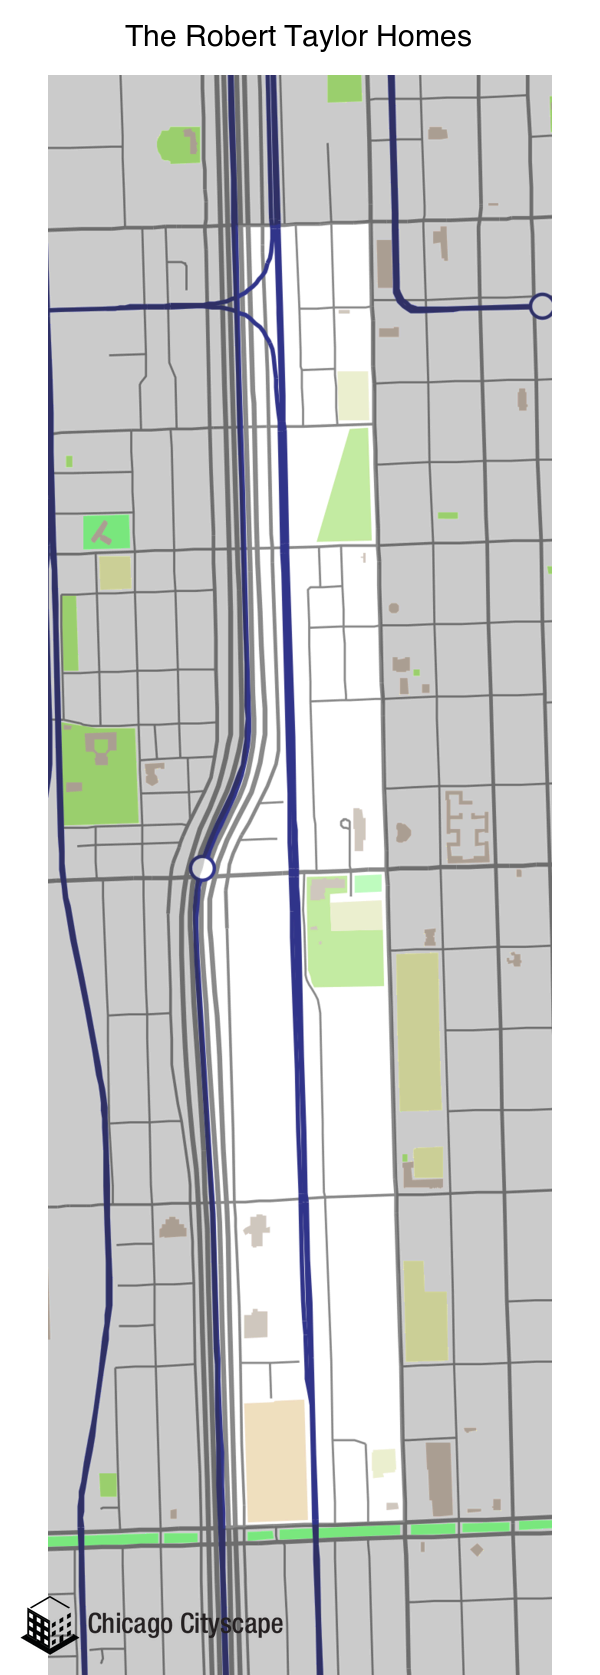 map of the robert taylor homes neighborhood designed by chicago cityscape